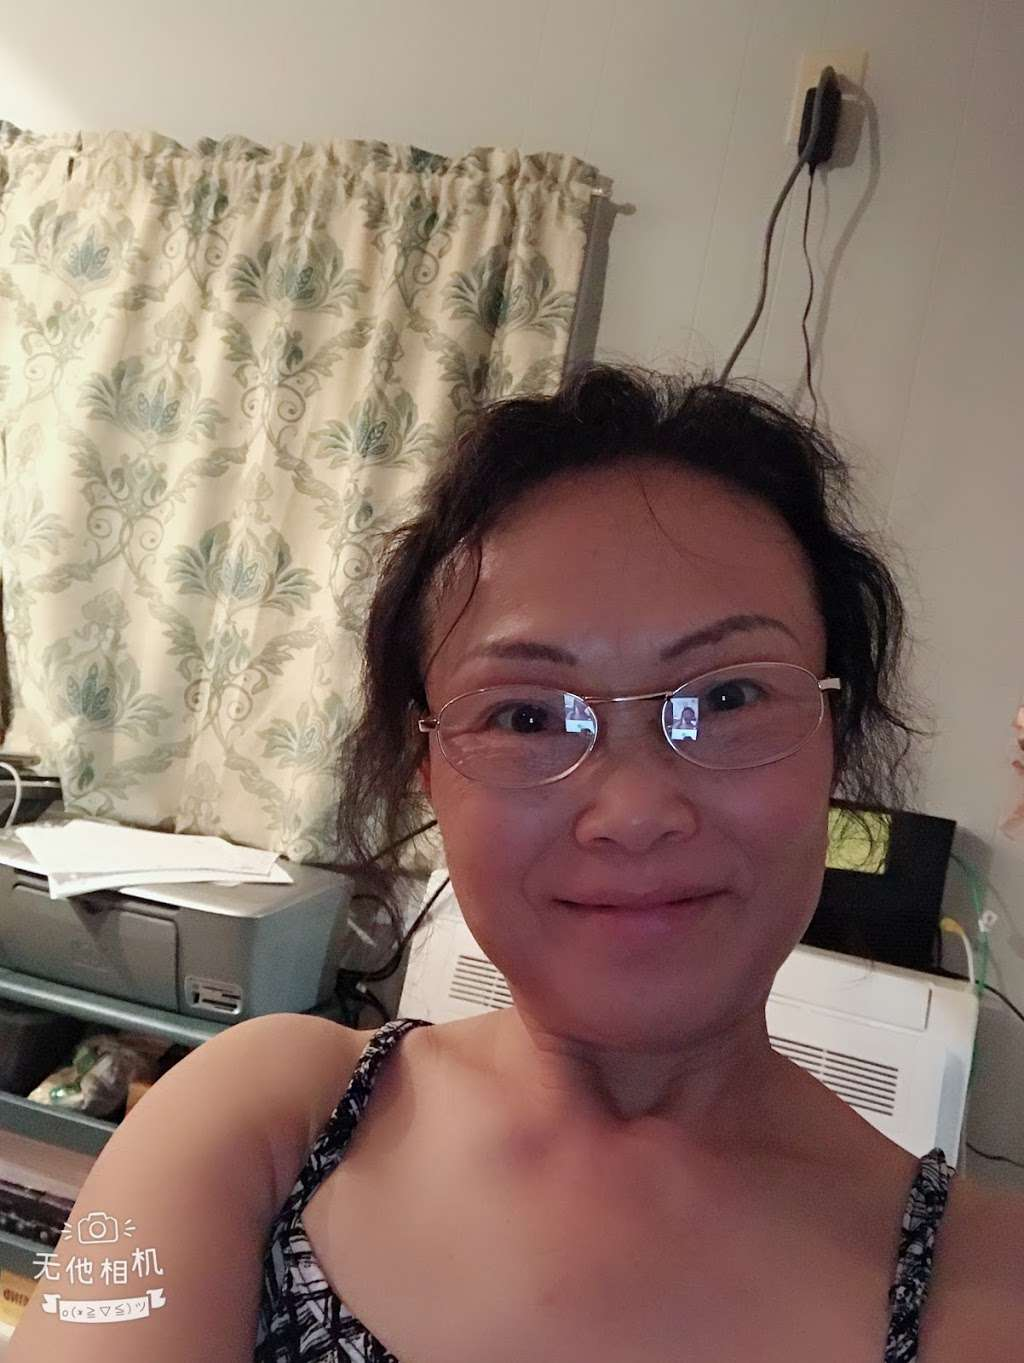 Lotus Massage Therapy - spa  | Photo 10 of 10 | Address: 3306 Co Rte 9/9, Hedgesville, WV 25427, USA | Phone: (304) 582-1802